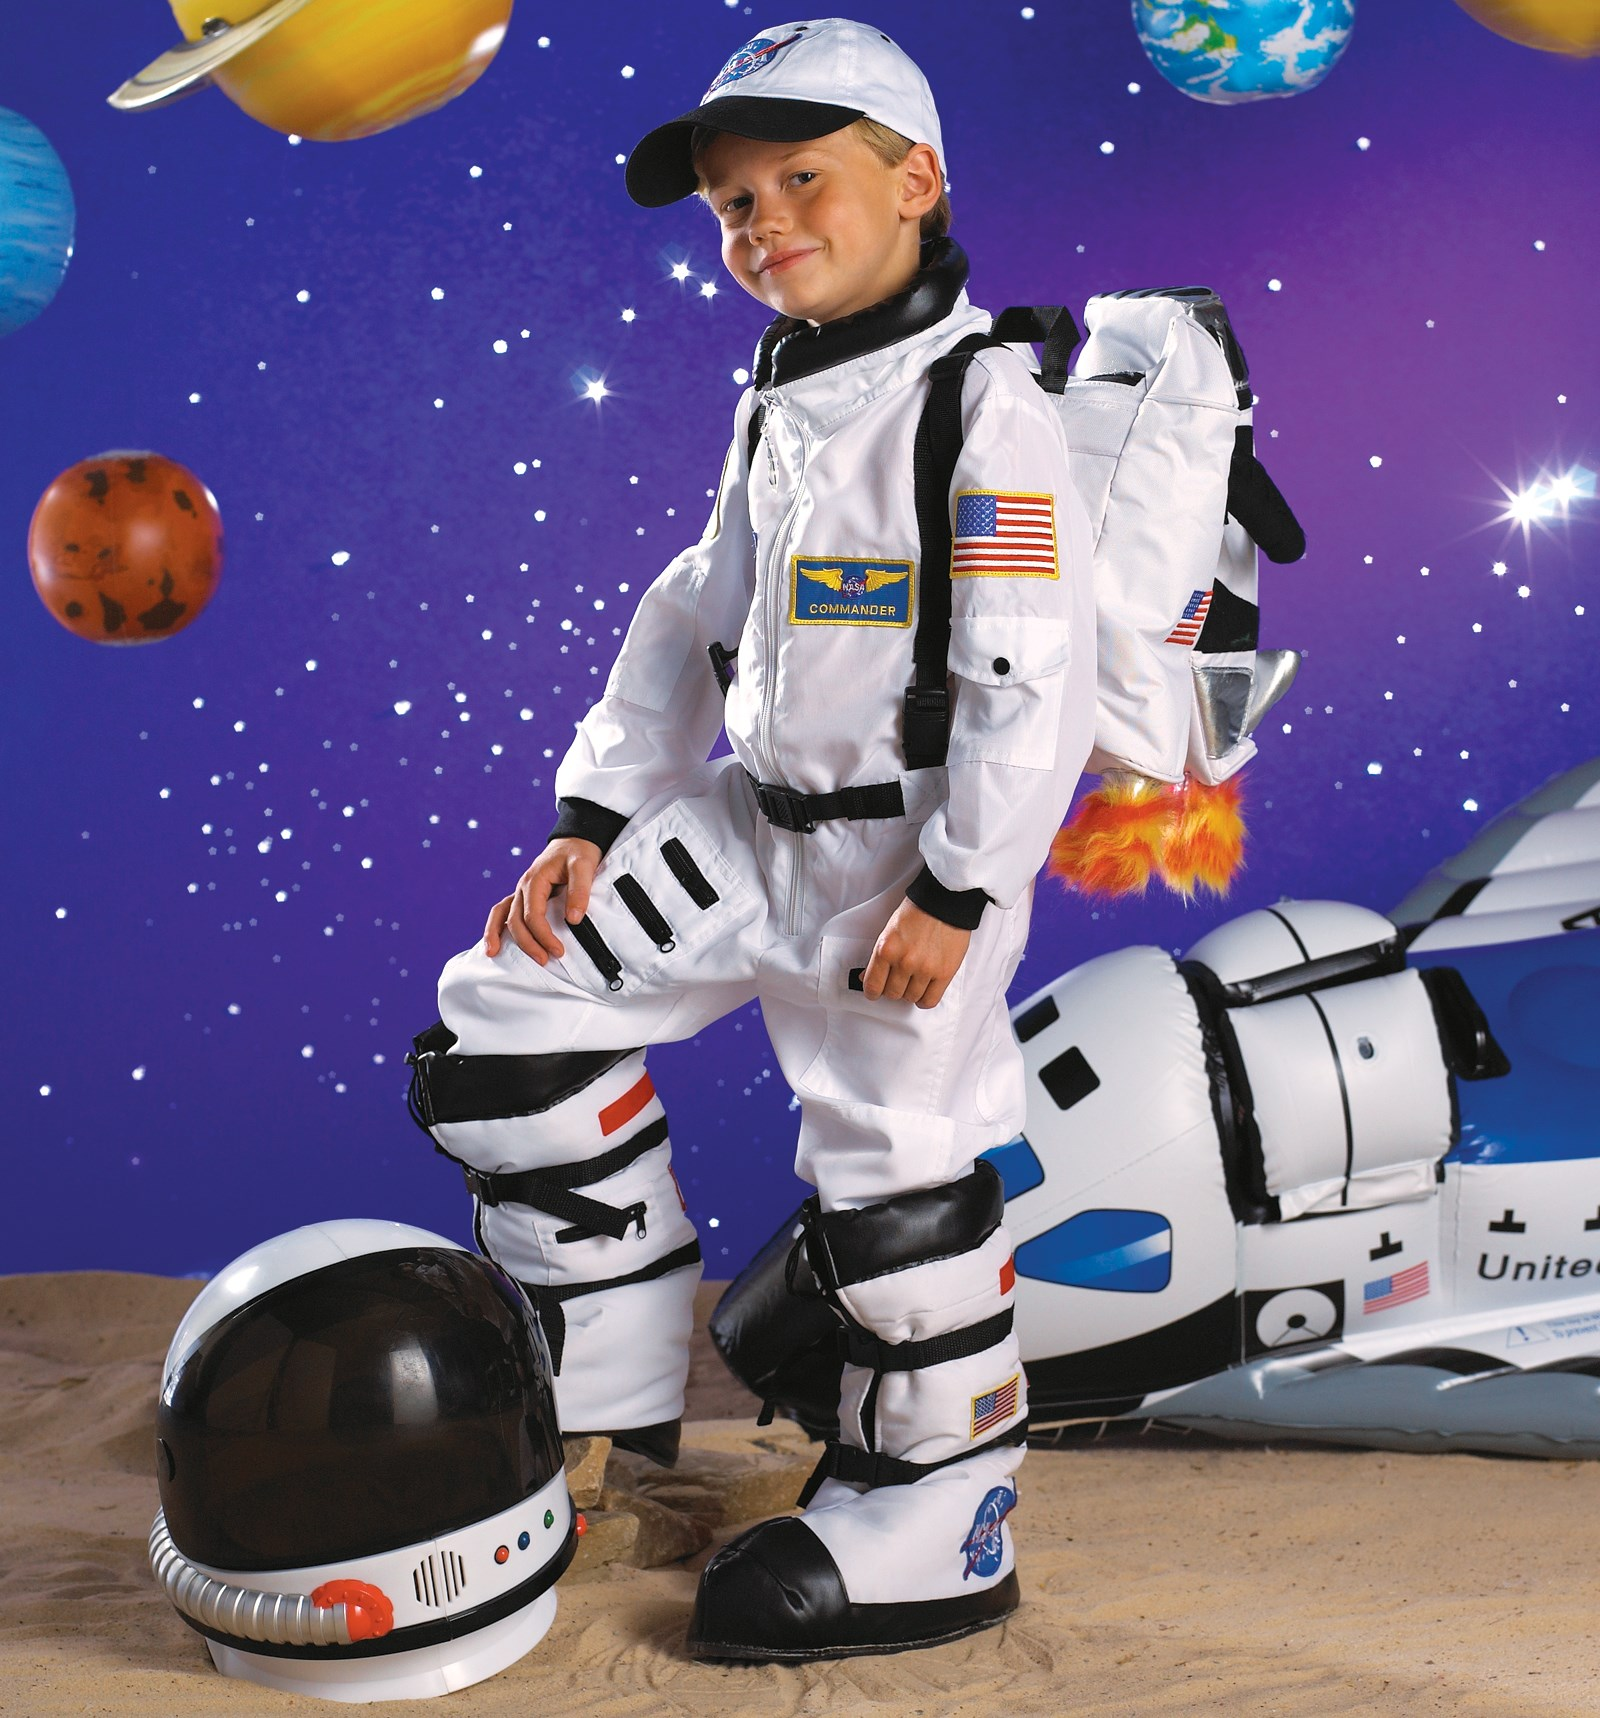 Astronaut (White) Toddler / Child Costume 4-6